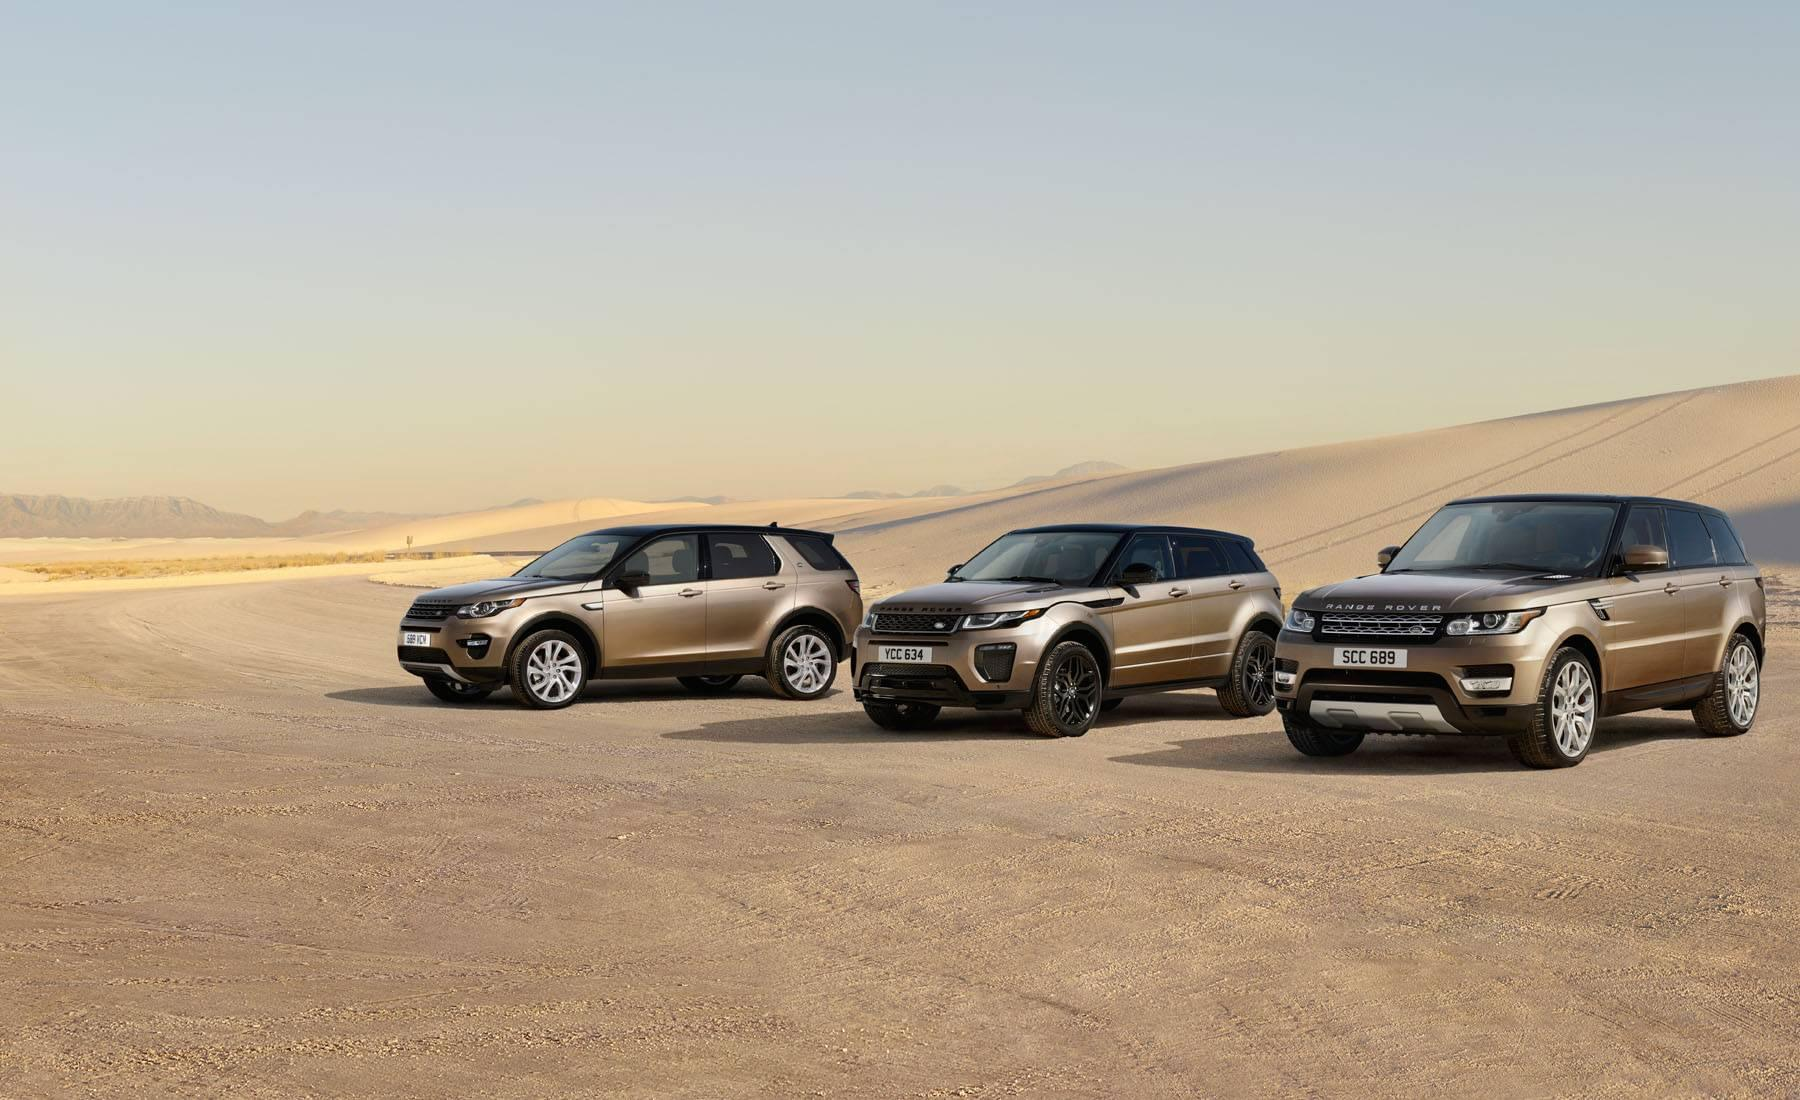 Land Rover Evoque Towing Capacity >> Land Rover SUVs for Sale in Superior CO | Land Rover Flatirons